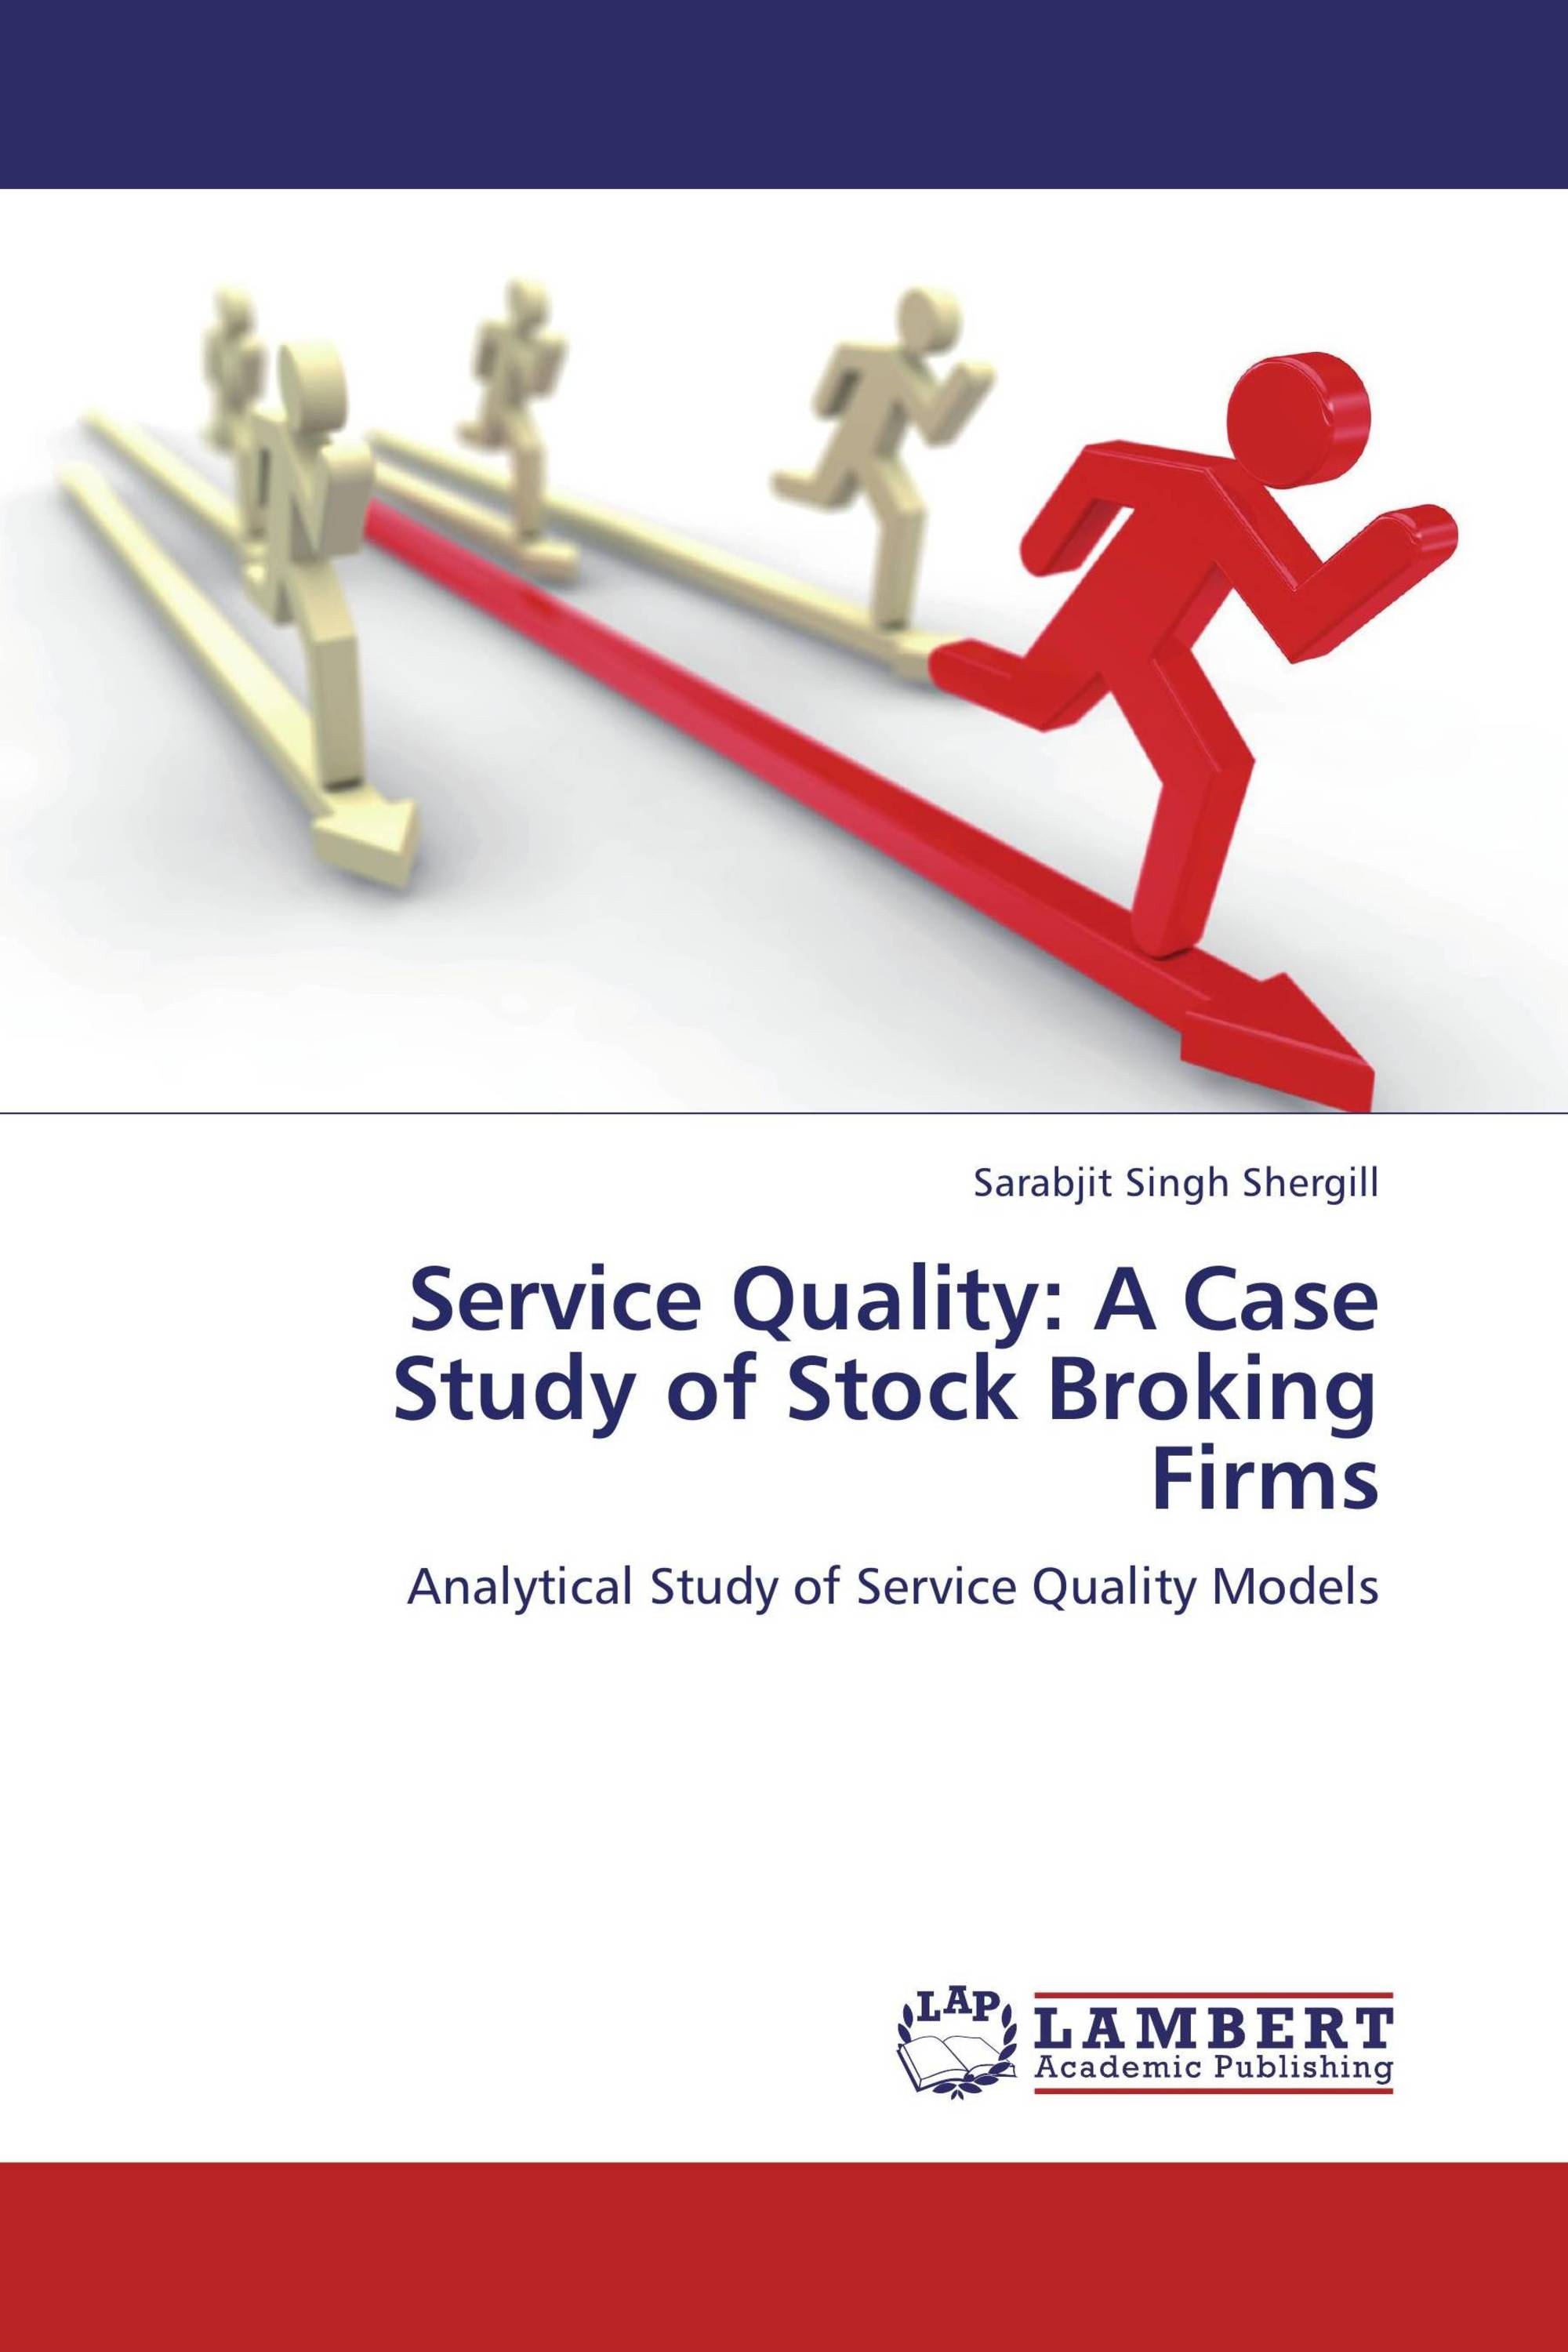 a study of service quality of This research showed that the servqual model can be used for determine the quality of services offered by telecenters in rural areas a b s t r a c t the development of rural telecommunication services in iran has been a major and national concern during the past few years.